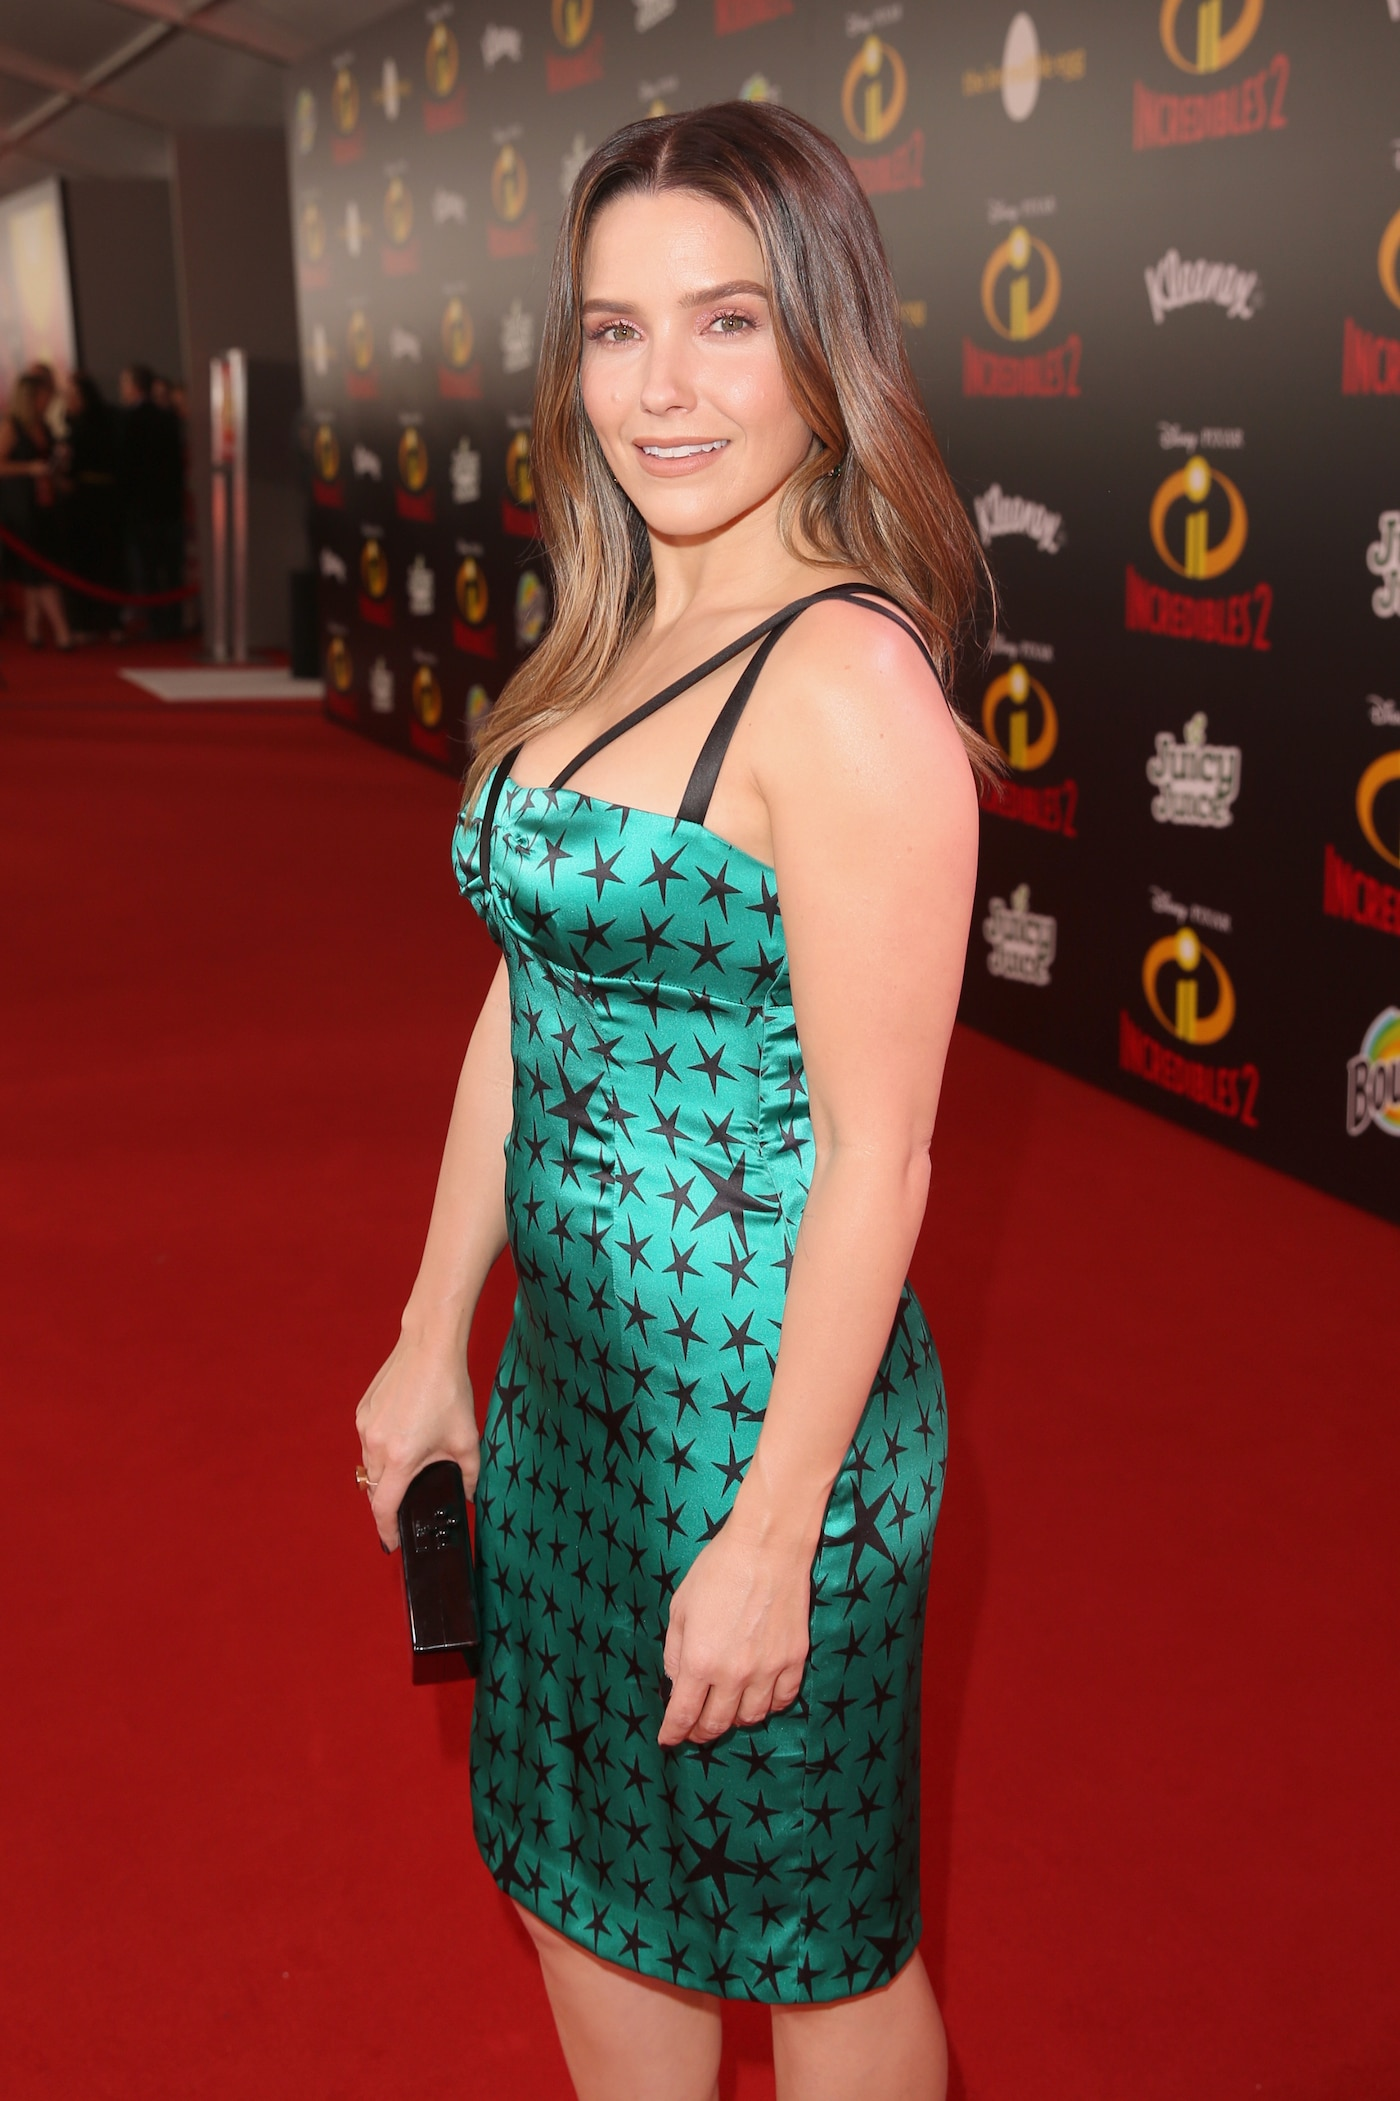 Sophia Bush posing for a picture on the red carpet